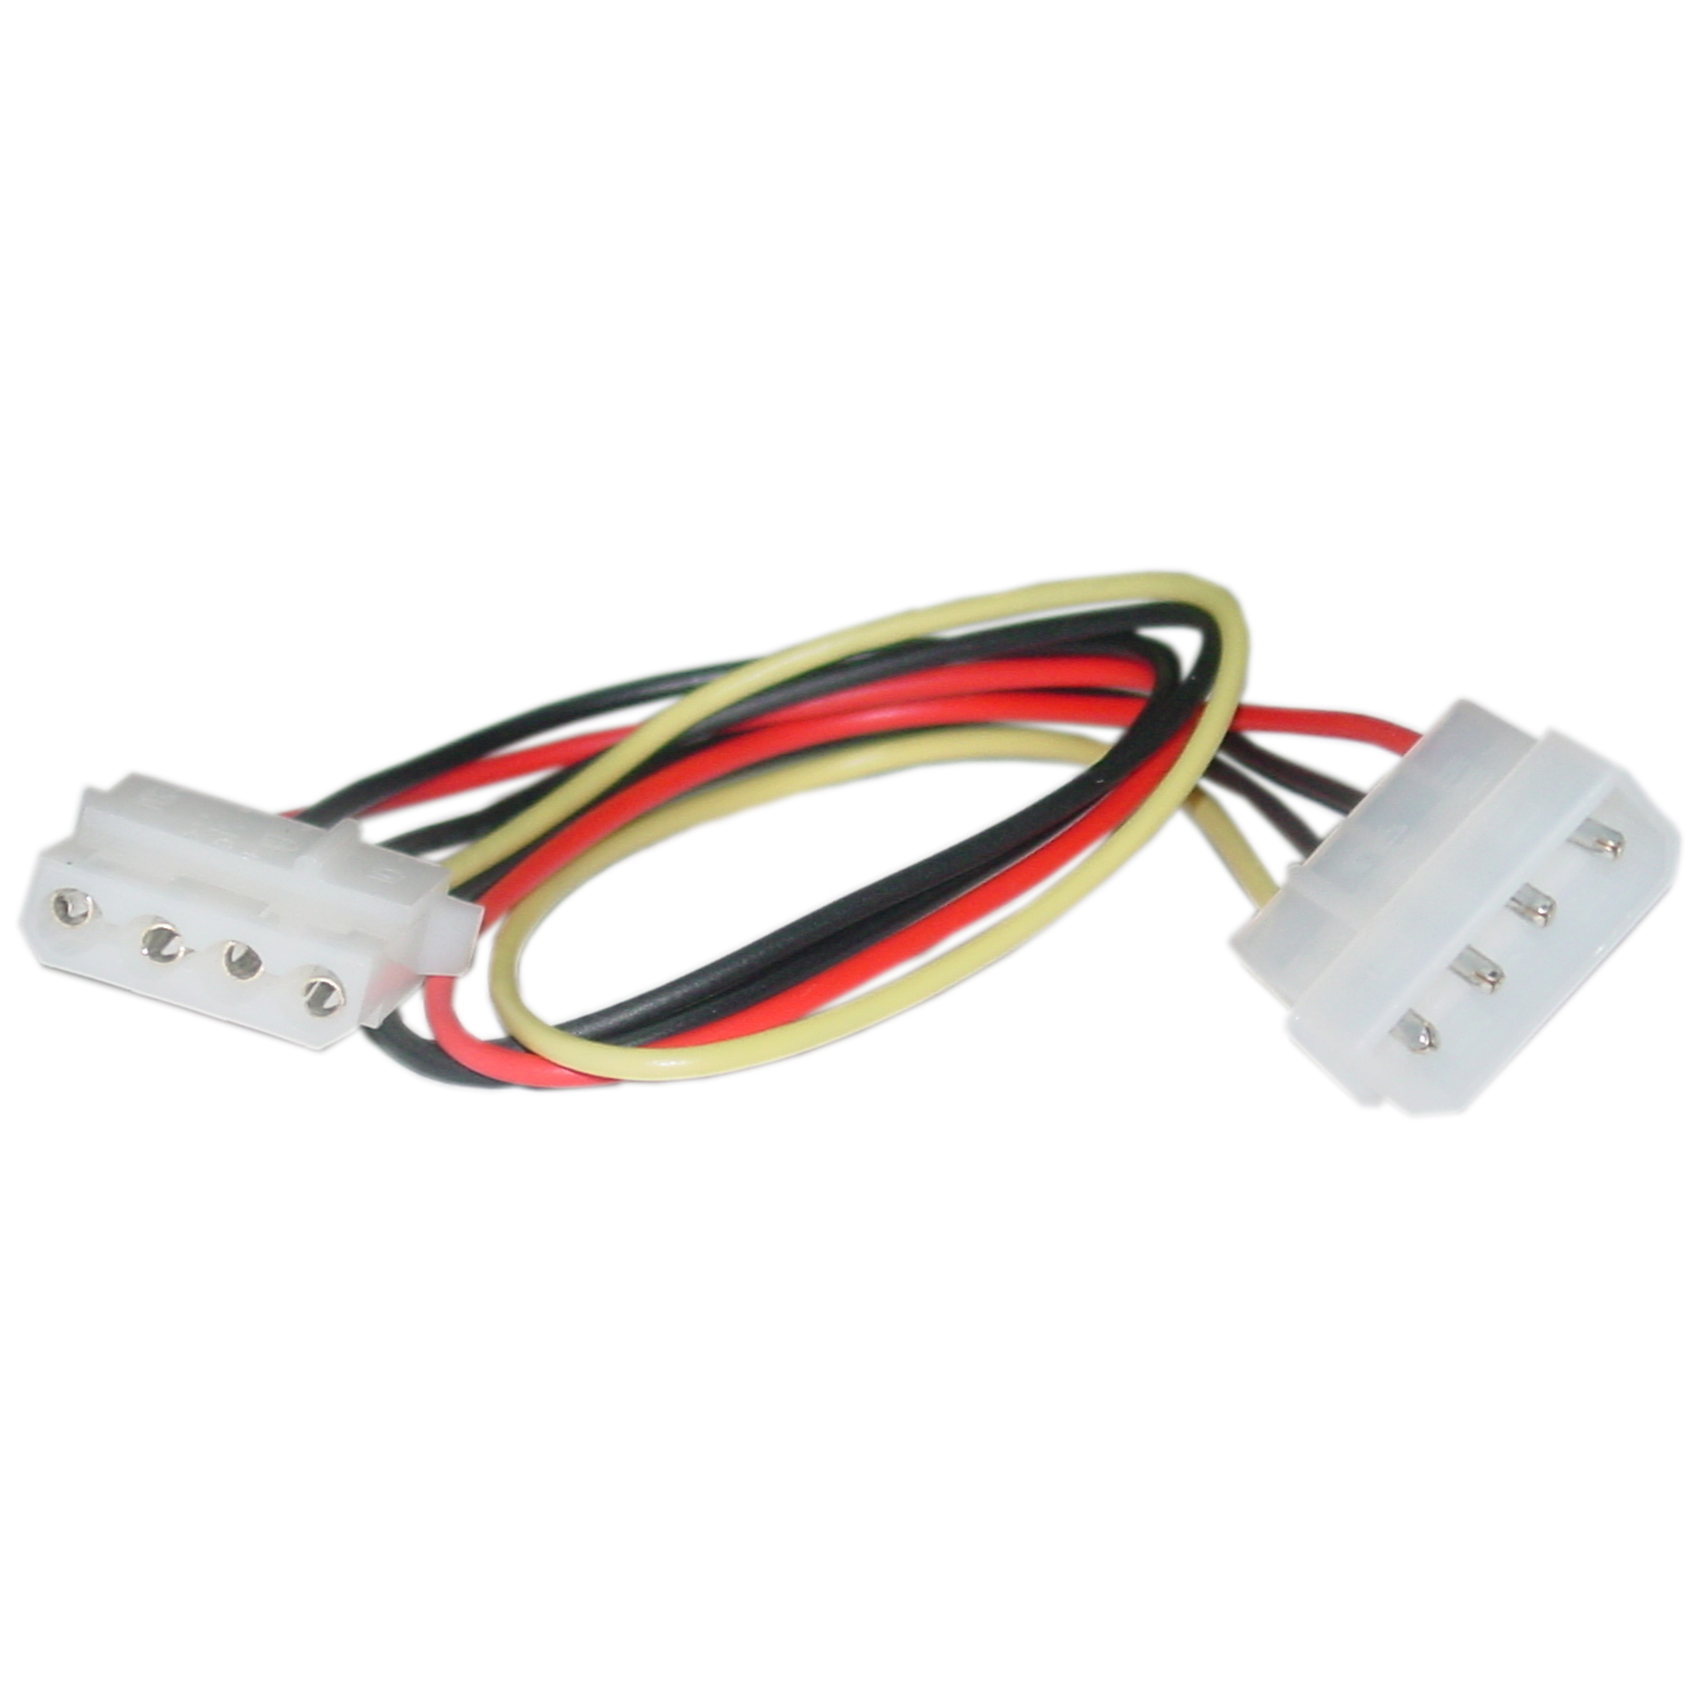 12 Inch 4 Pin Molex Extension Cable